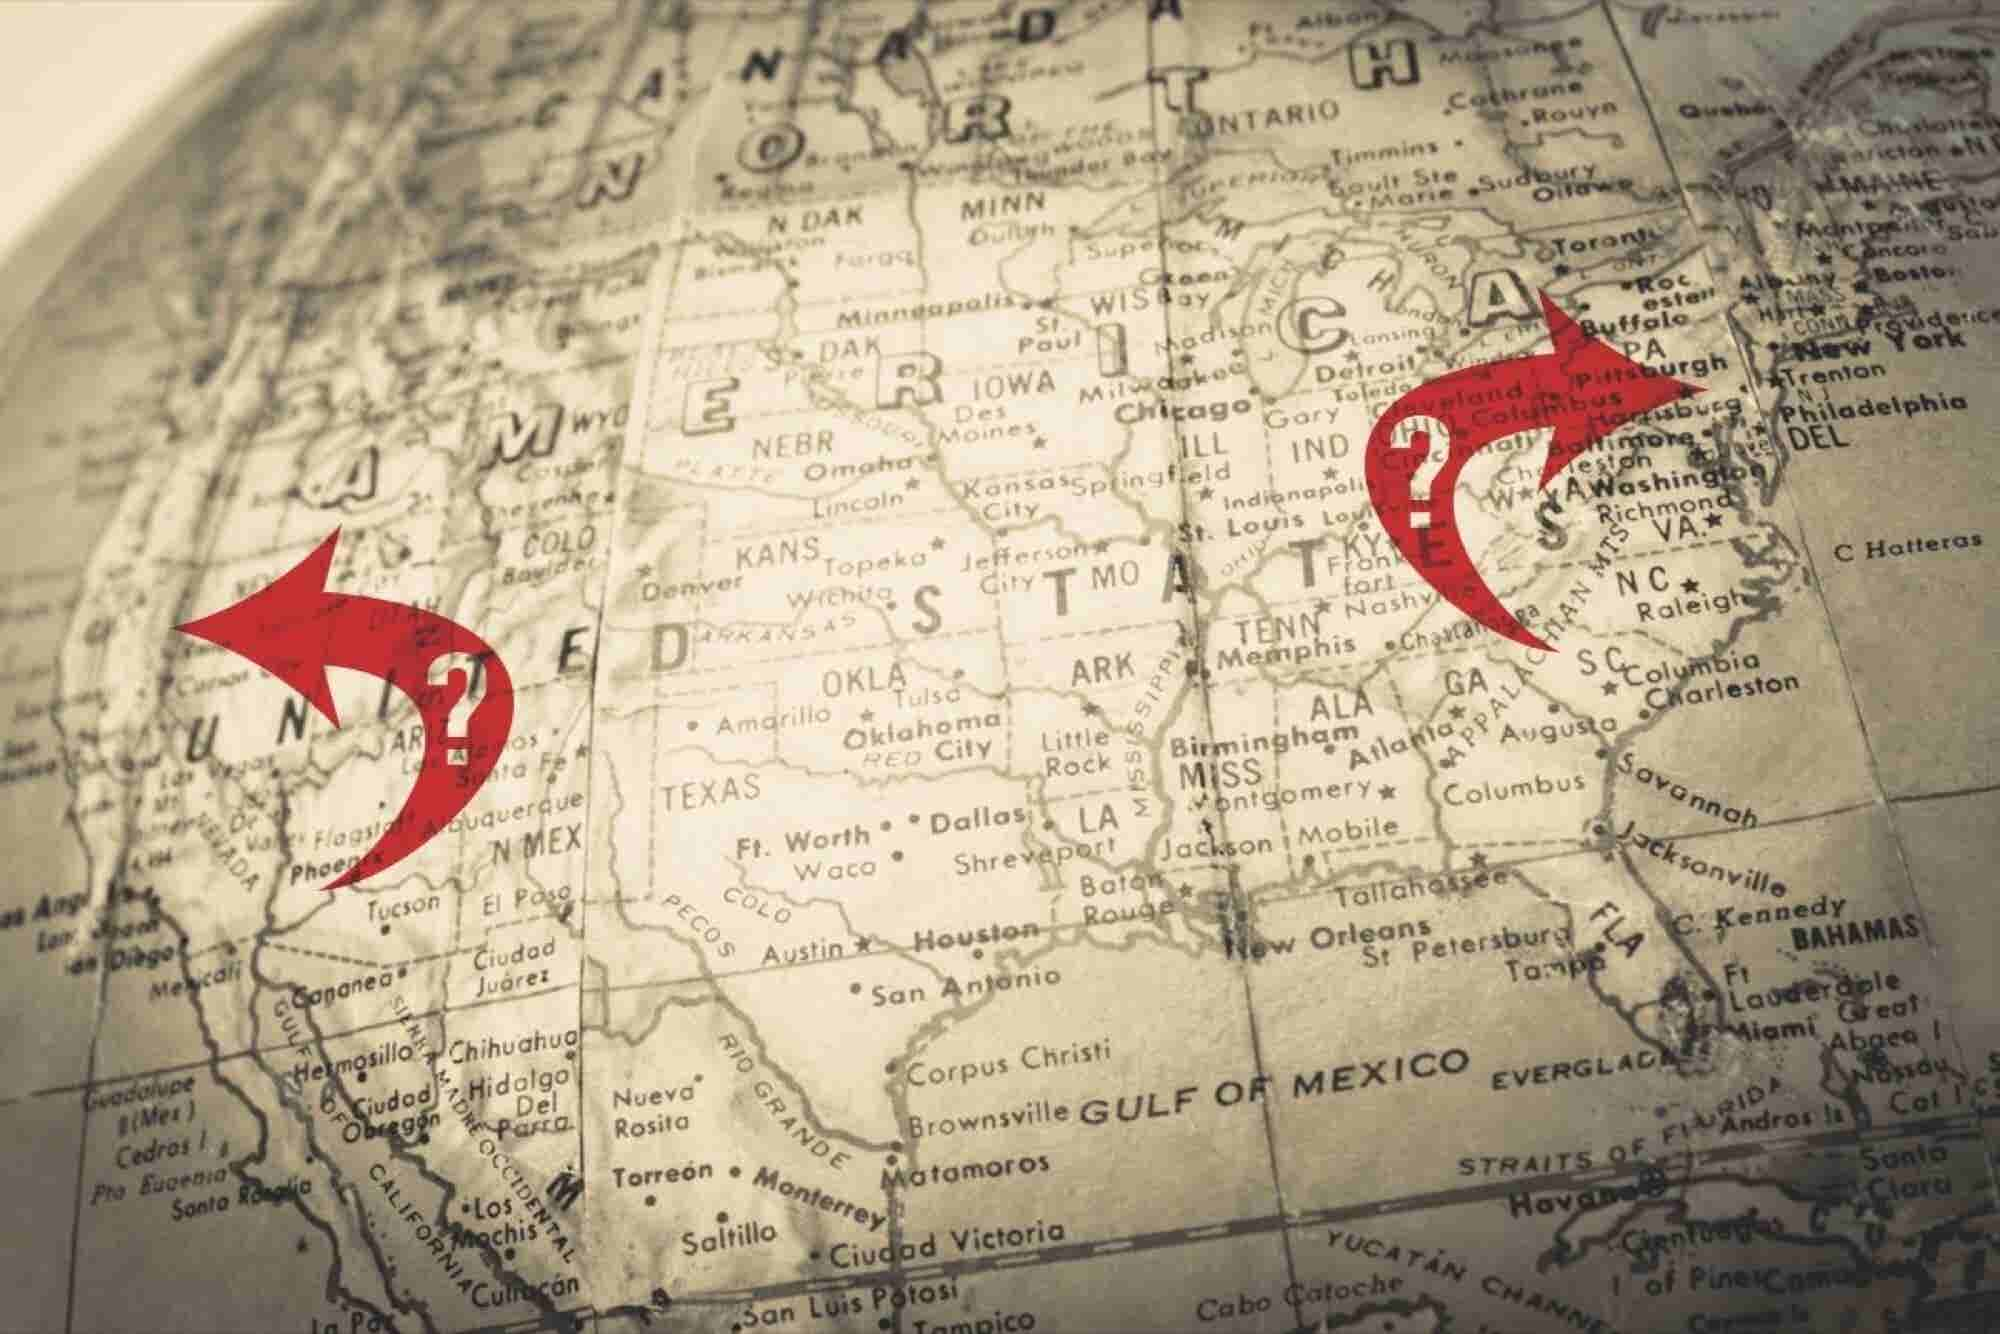 10 Things to Consider When Choosing a Location for Your Business